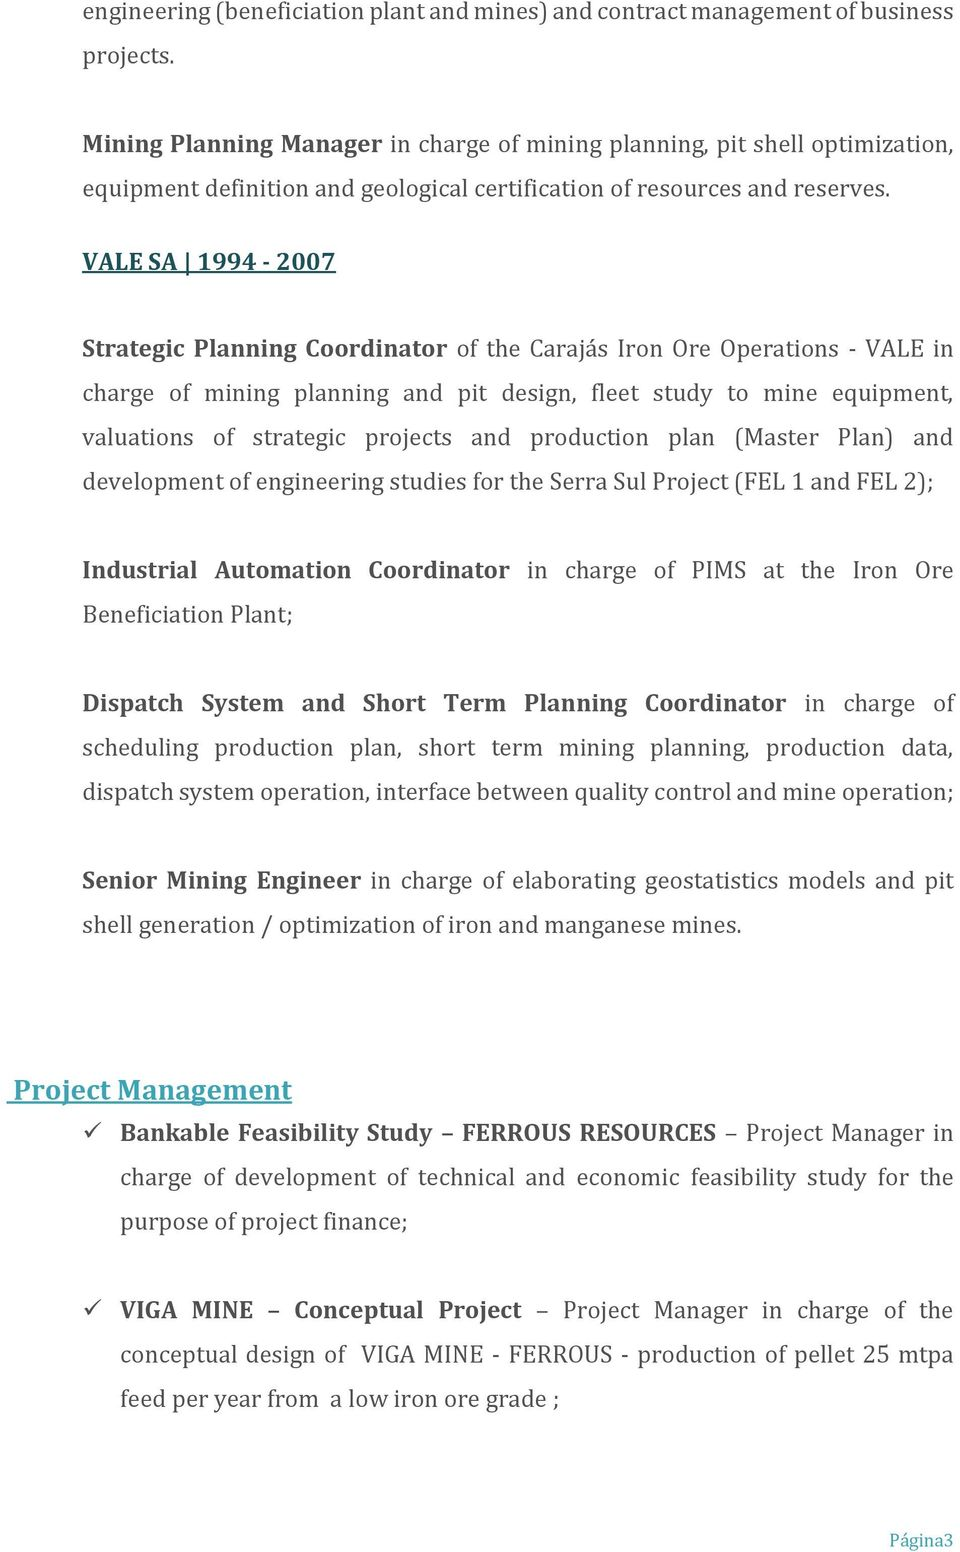 VALE SA 1994-2007 Strategic Planning Coordinator of the Carajás Iron Ore Operations - VALE in charge of mining planning and pit design, fleet study to mine equipment, valuations of strategic projects